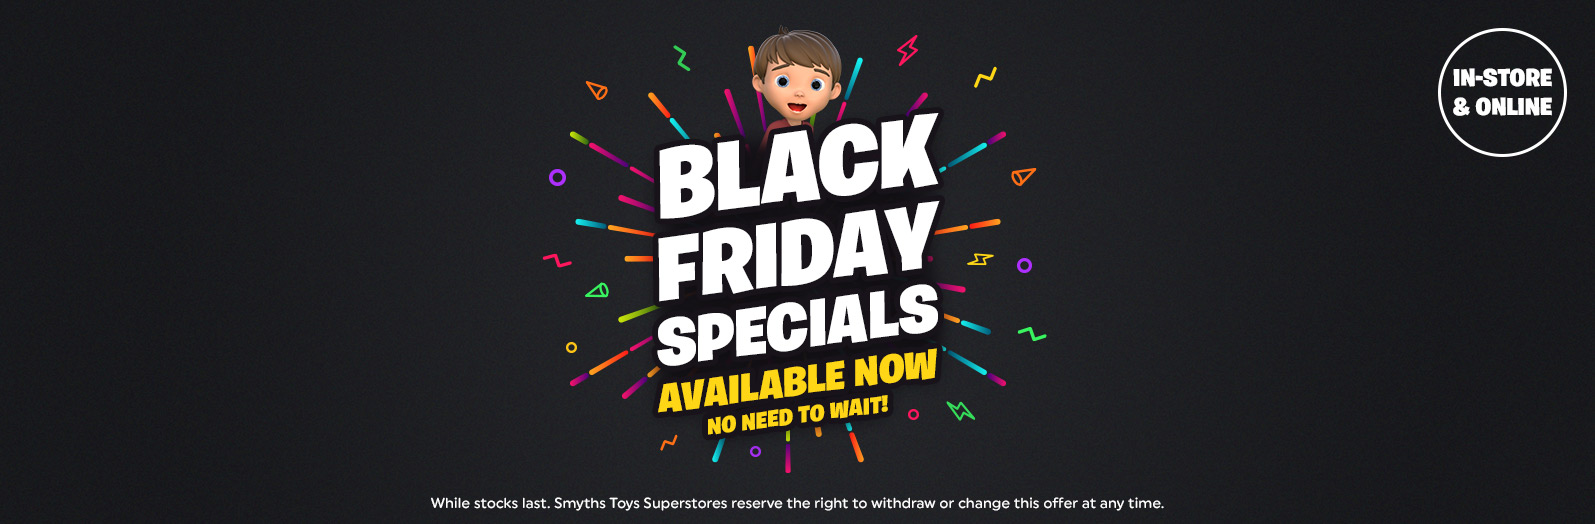 Black Friday offers availble now at Smyths Toys.